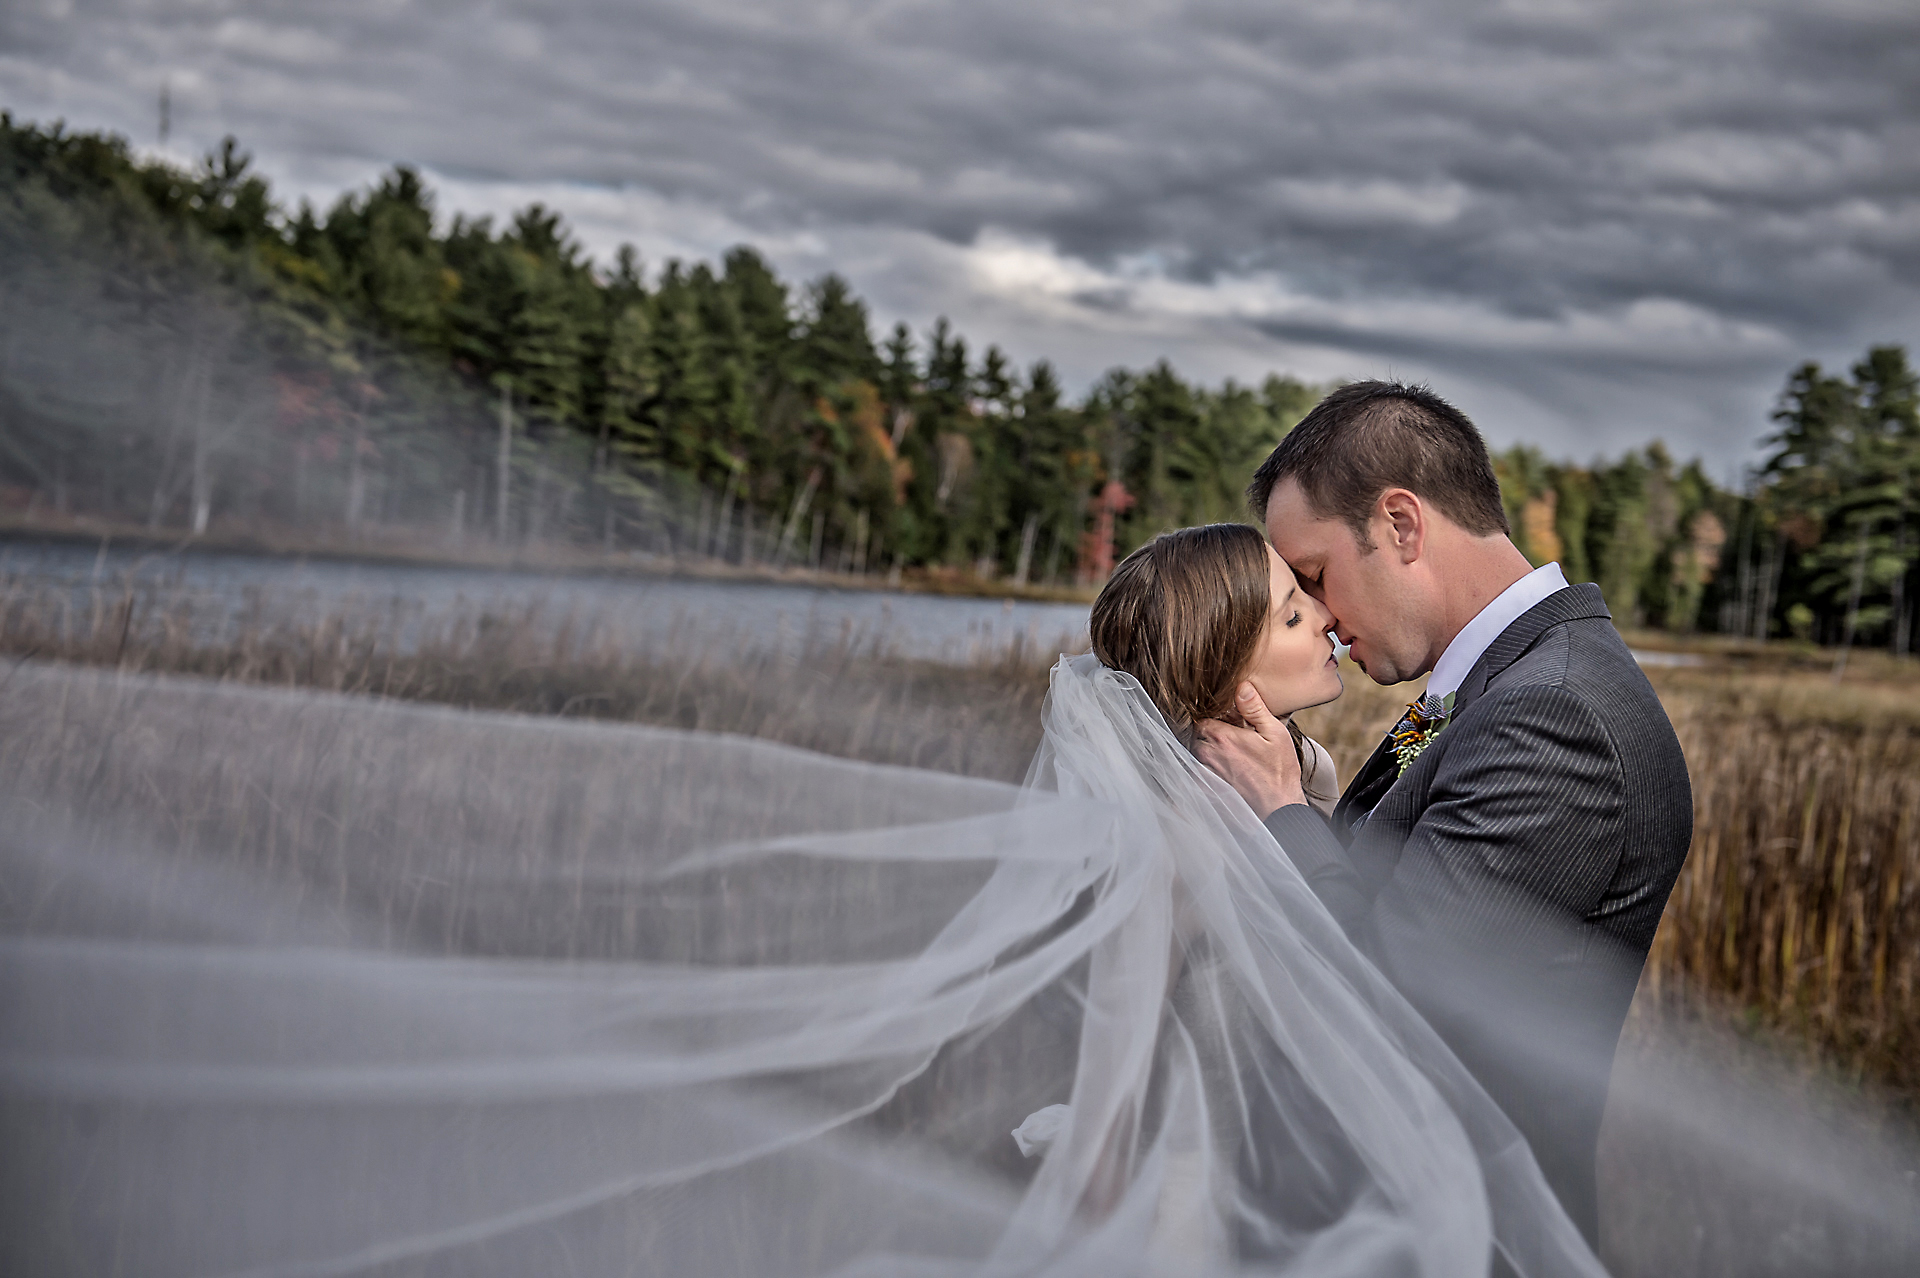 Nathan & Linda | Brooksfield Farms Wedding | Muskoka Wedding Photography22